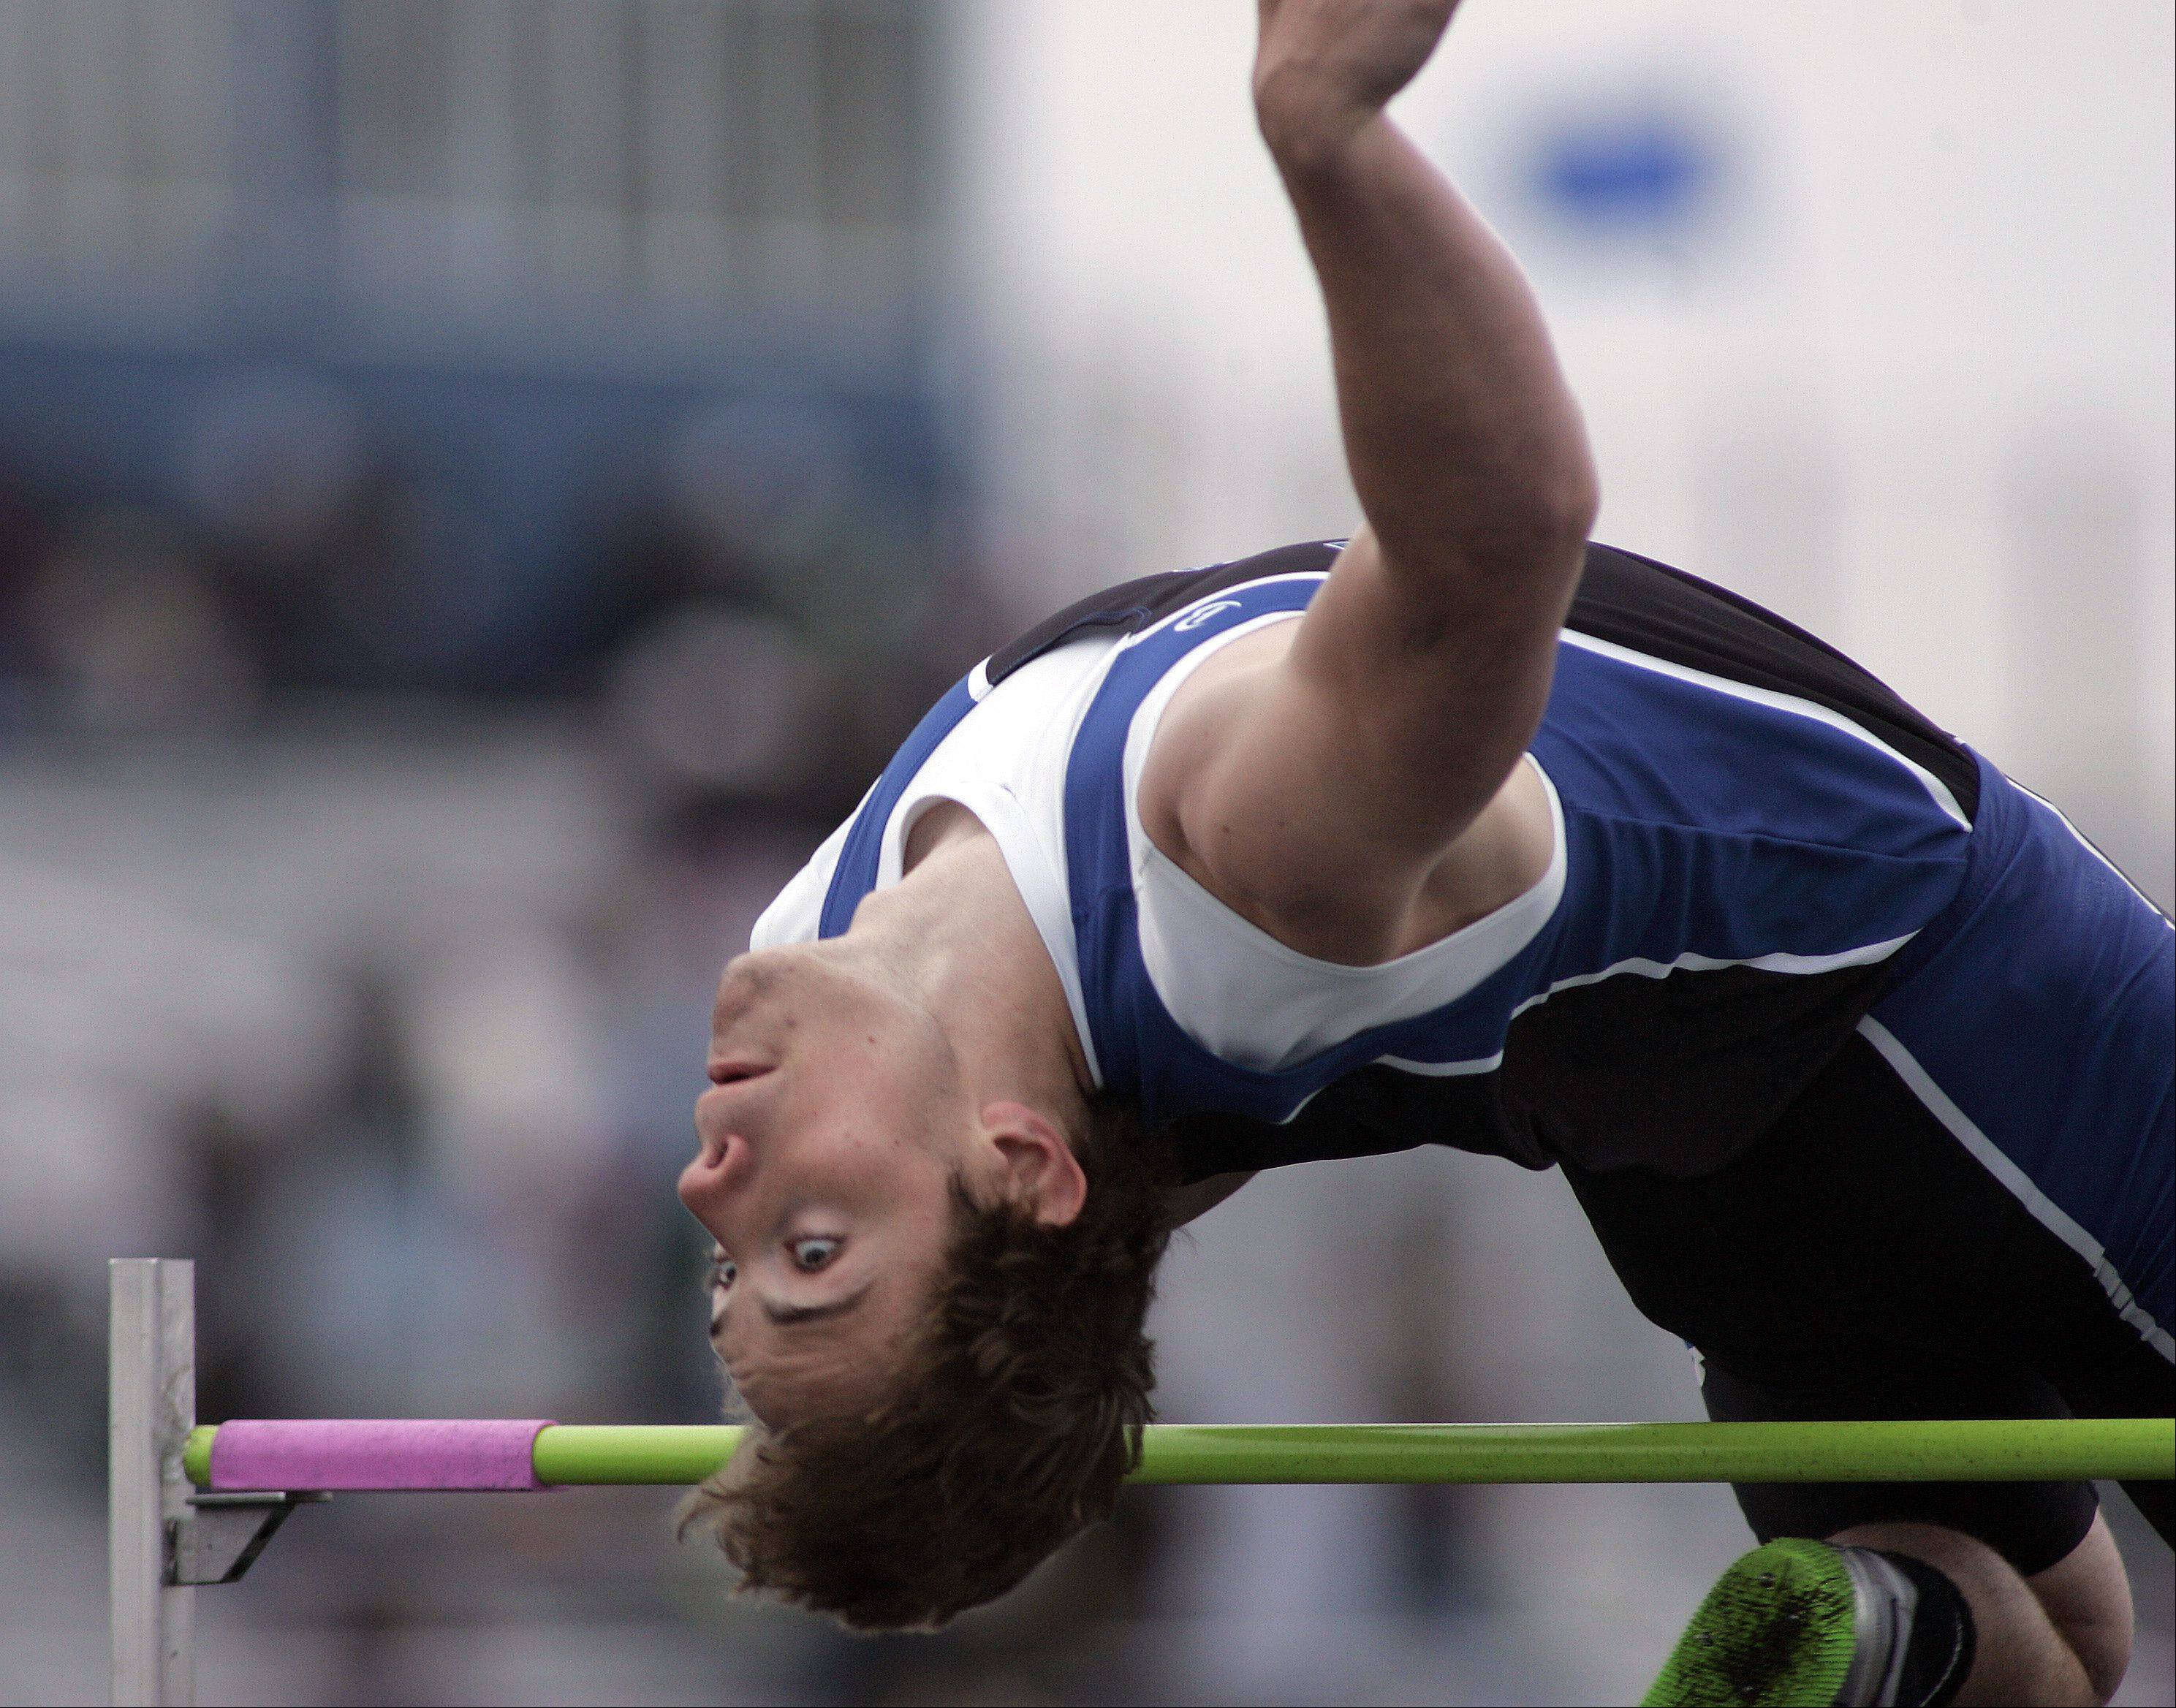 Erik Miller of St. Charles North competes in the high jump during the Kane County boys track meet Friday at Burlington Central High School.